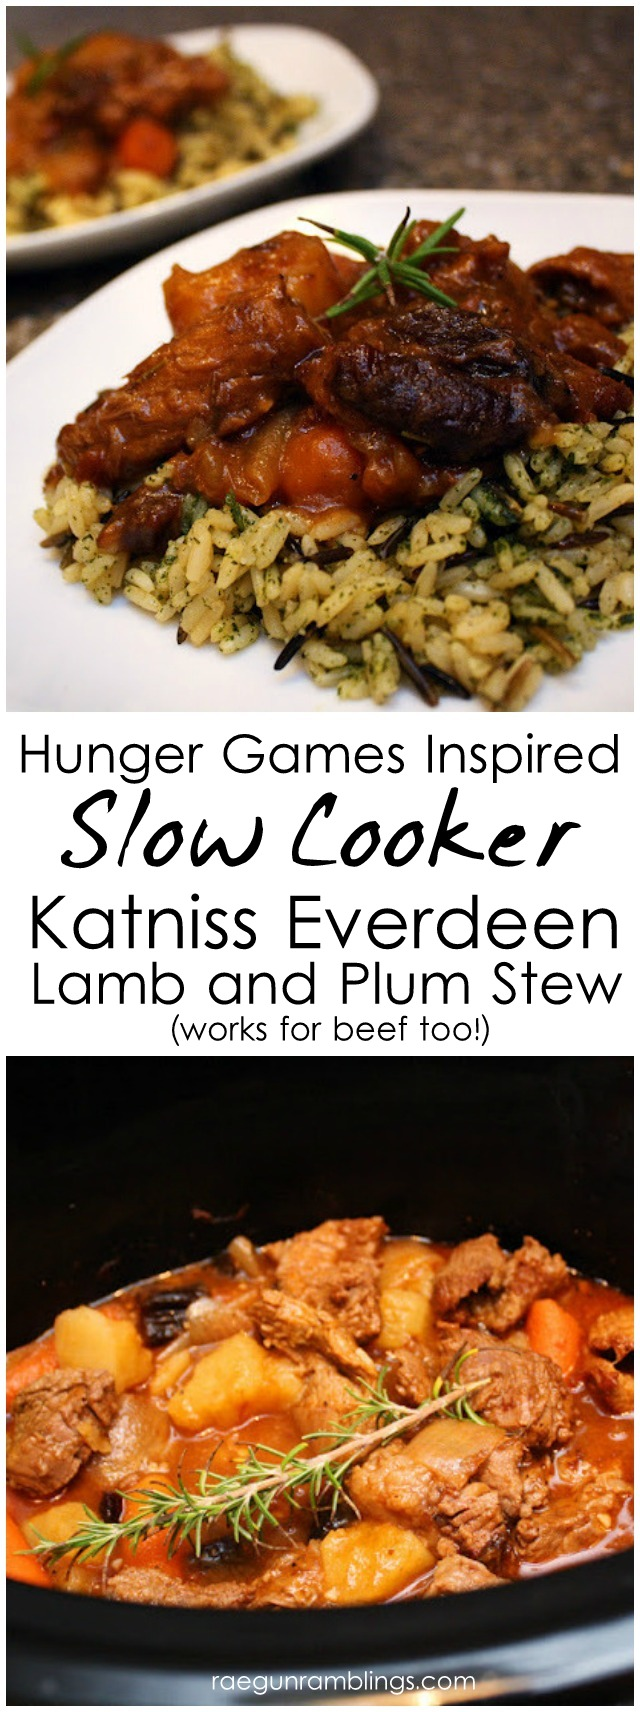 Crock Pot Recipe: Hunger Games Katniss Stew Lamb (or beef) and Plums - Rae Gun Ramblings